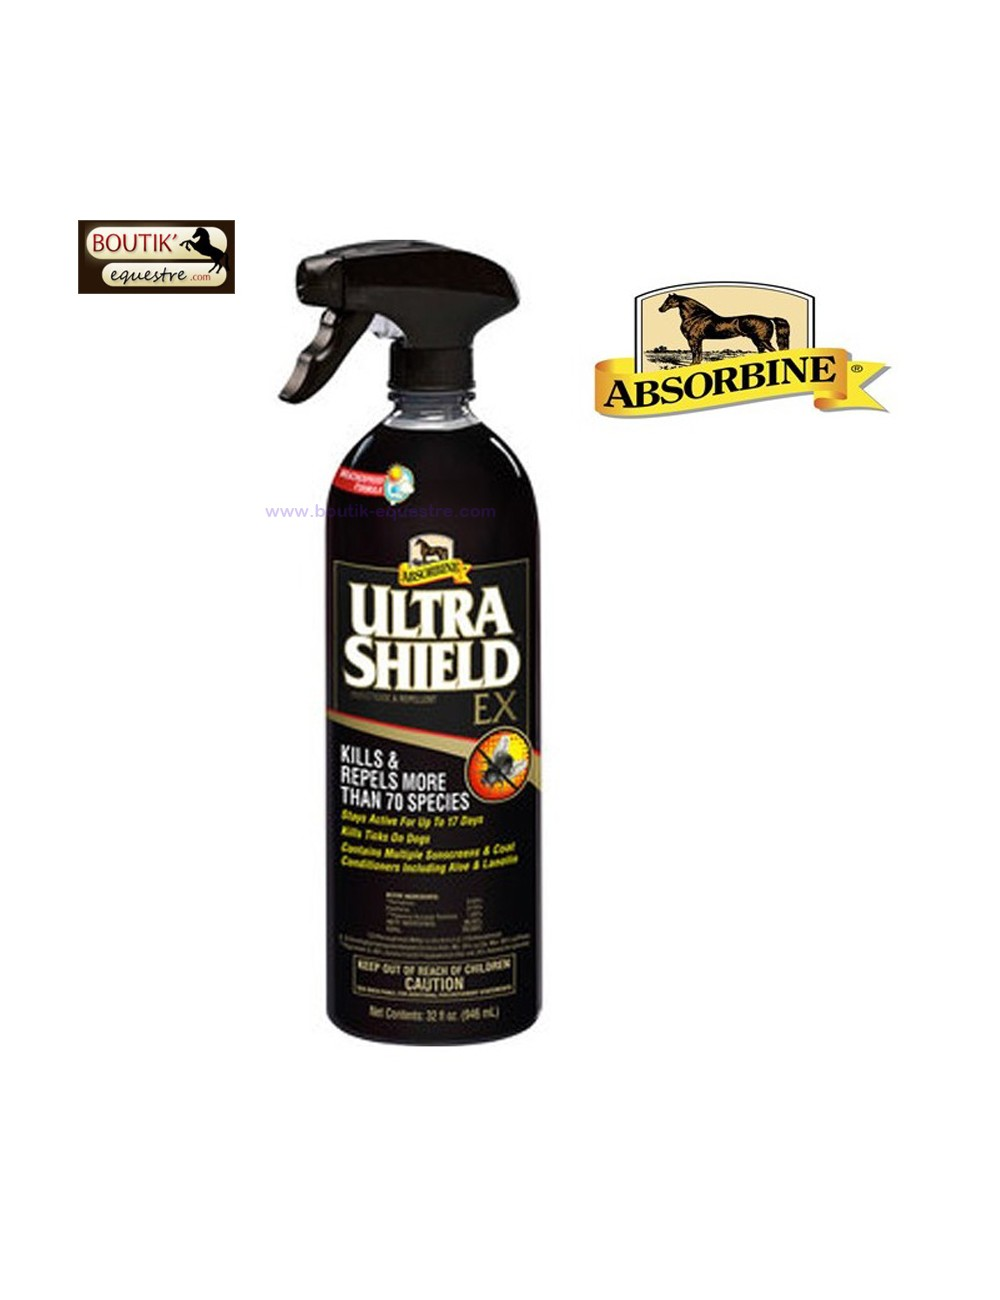 UltraShield Fly Absorbine